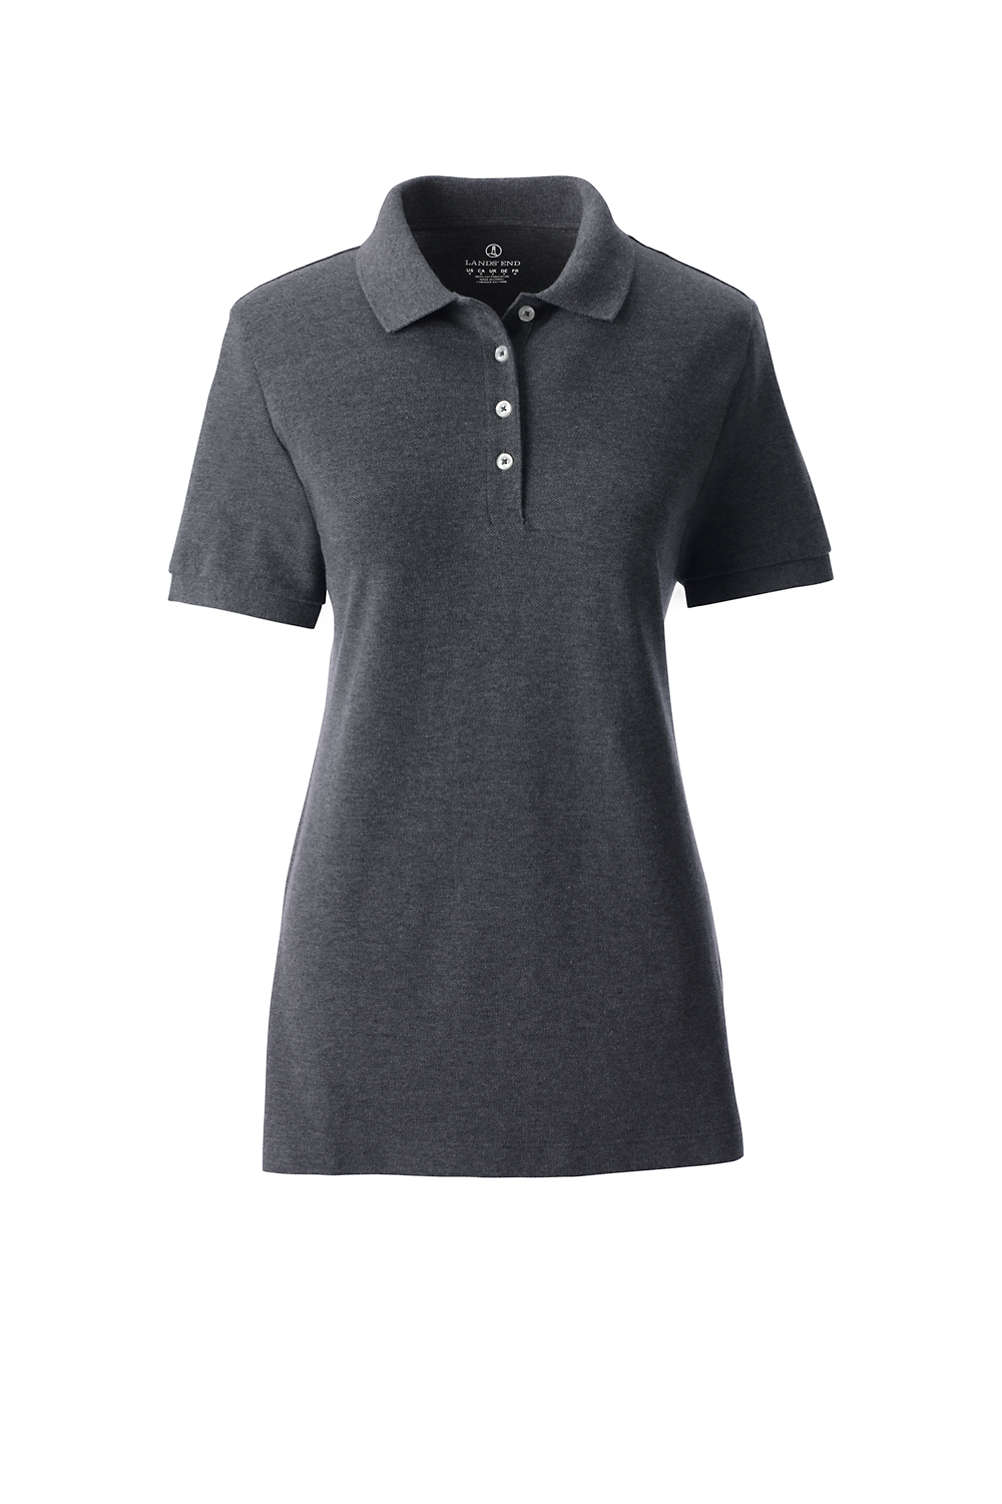 884c33bad School Uniform Women's Banded Short Sleeve Fem Fit Mesh Polo from Lands' End